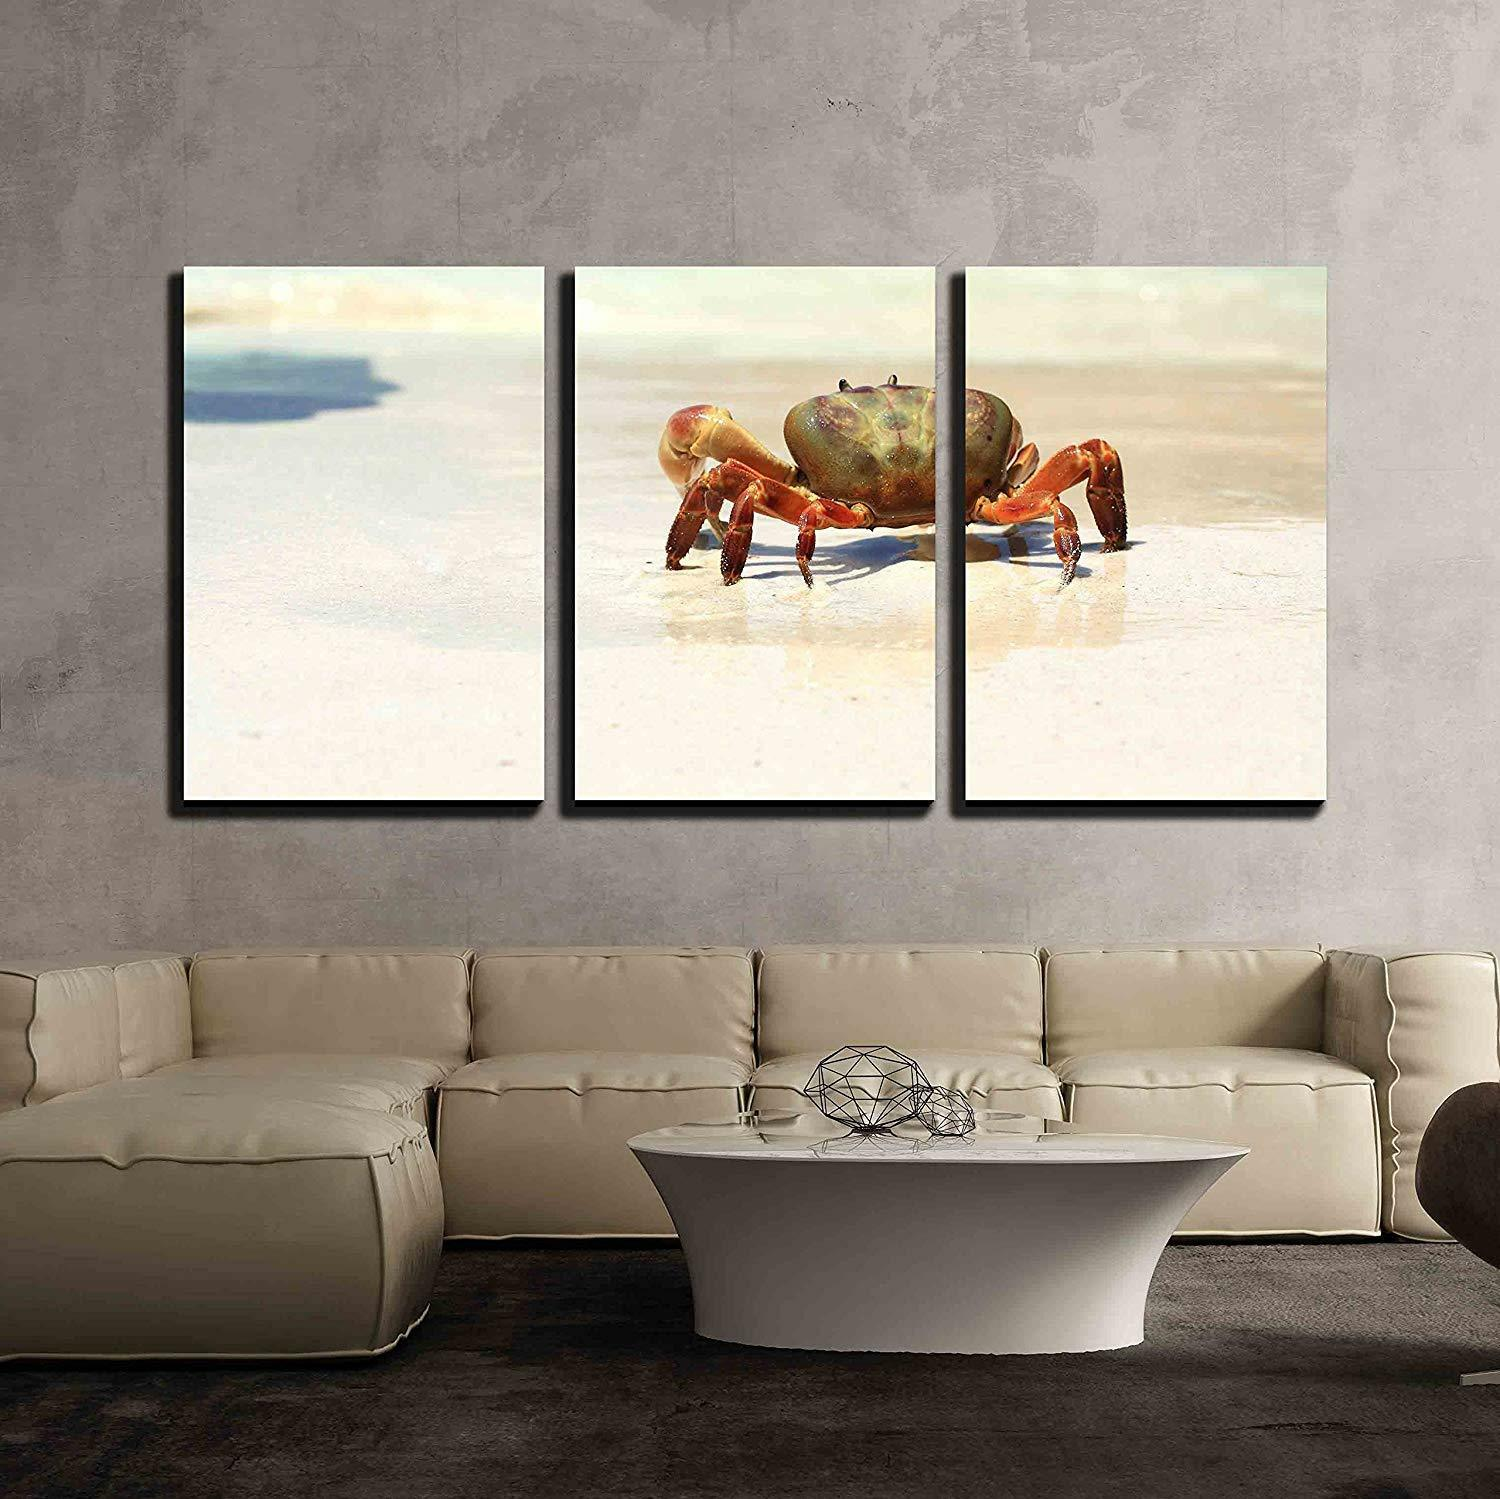 Wall26 - the Crab on the Beach - Canvas Art Wall Decor - 24 x36 x3 Panels